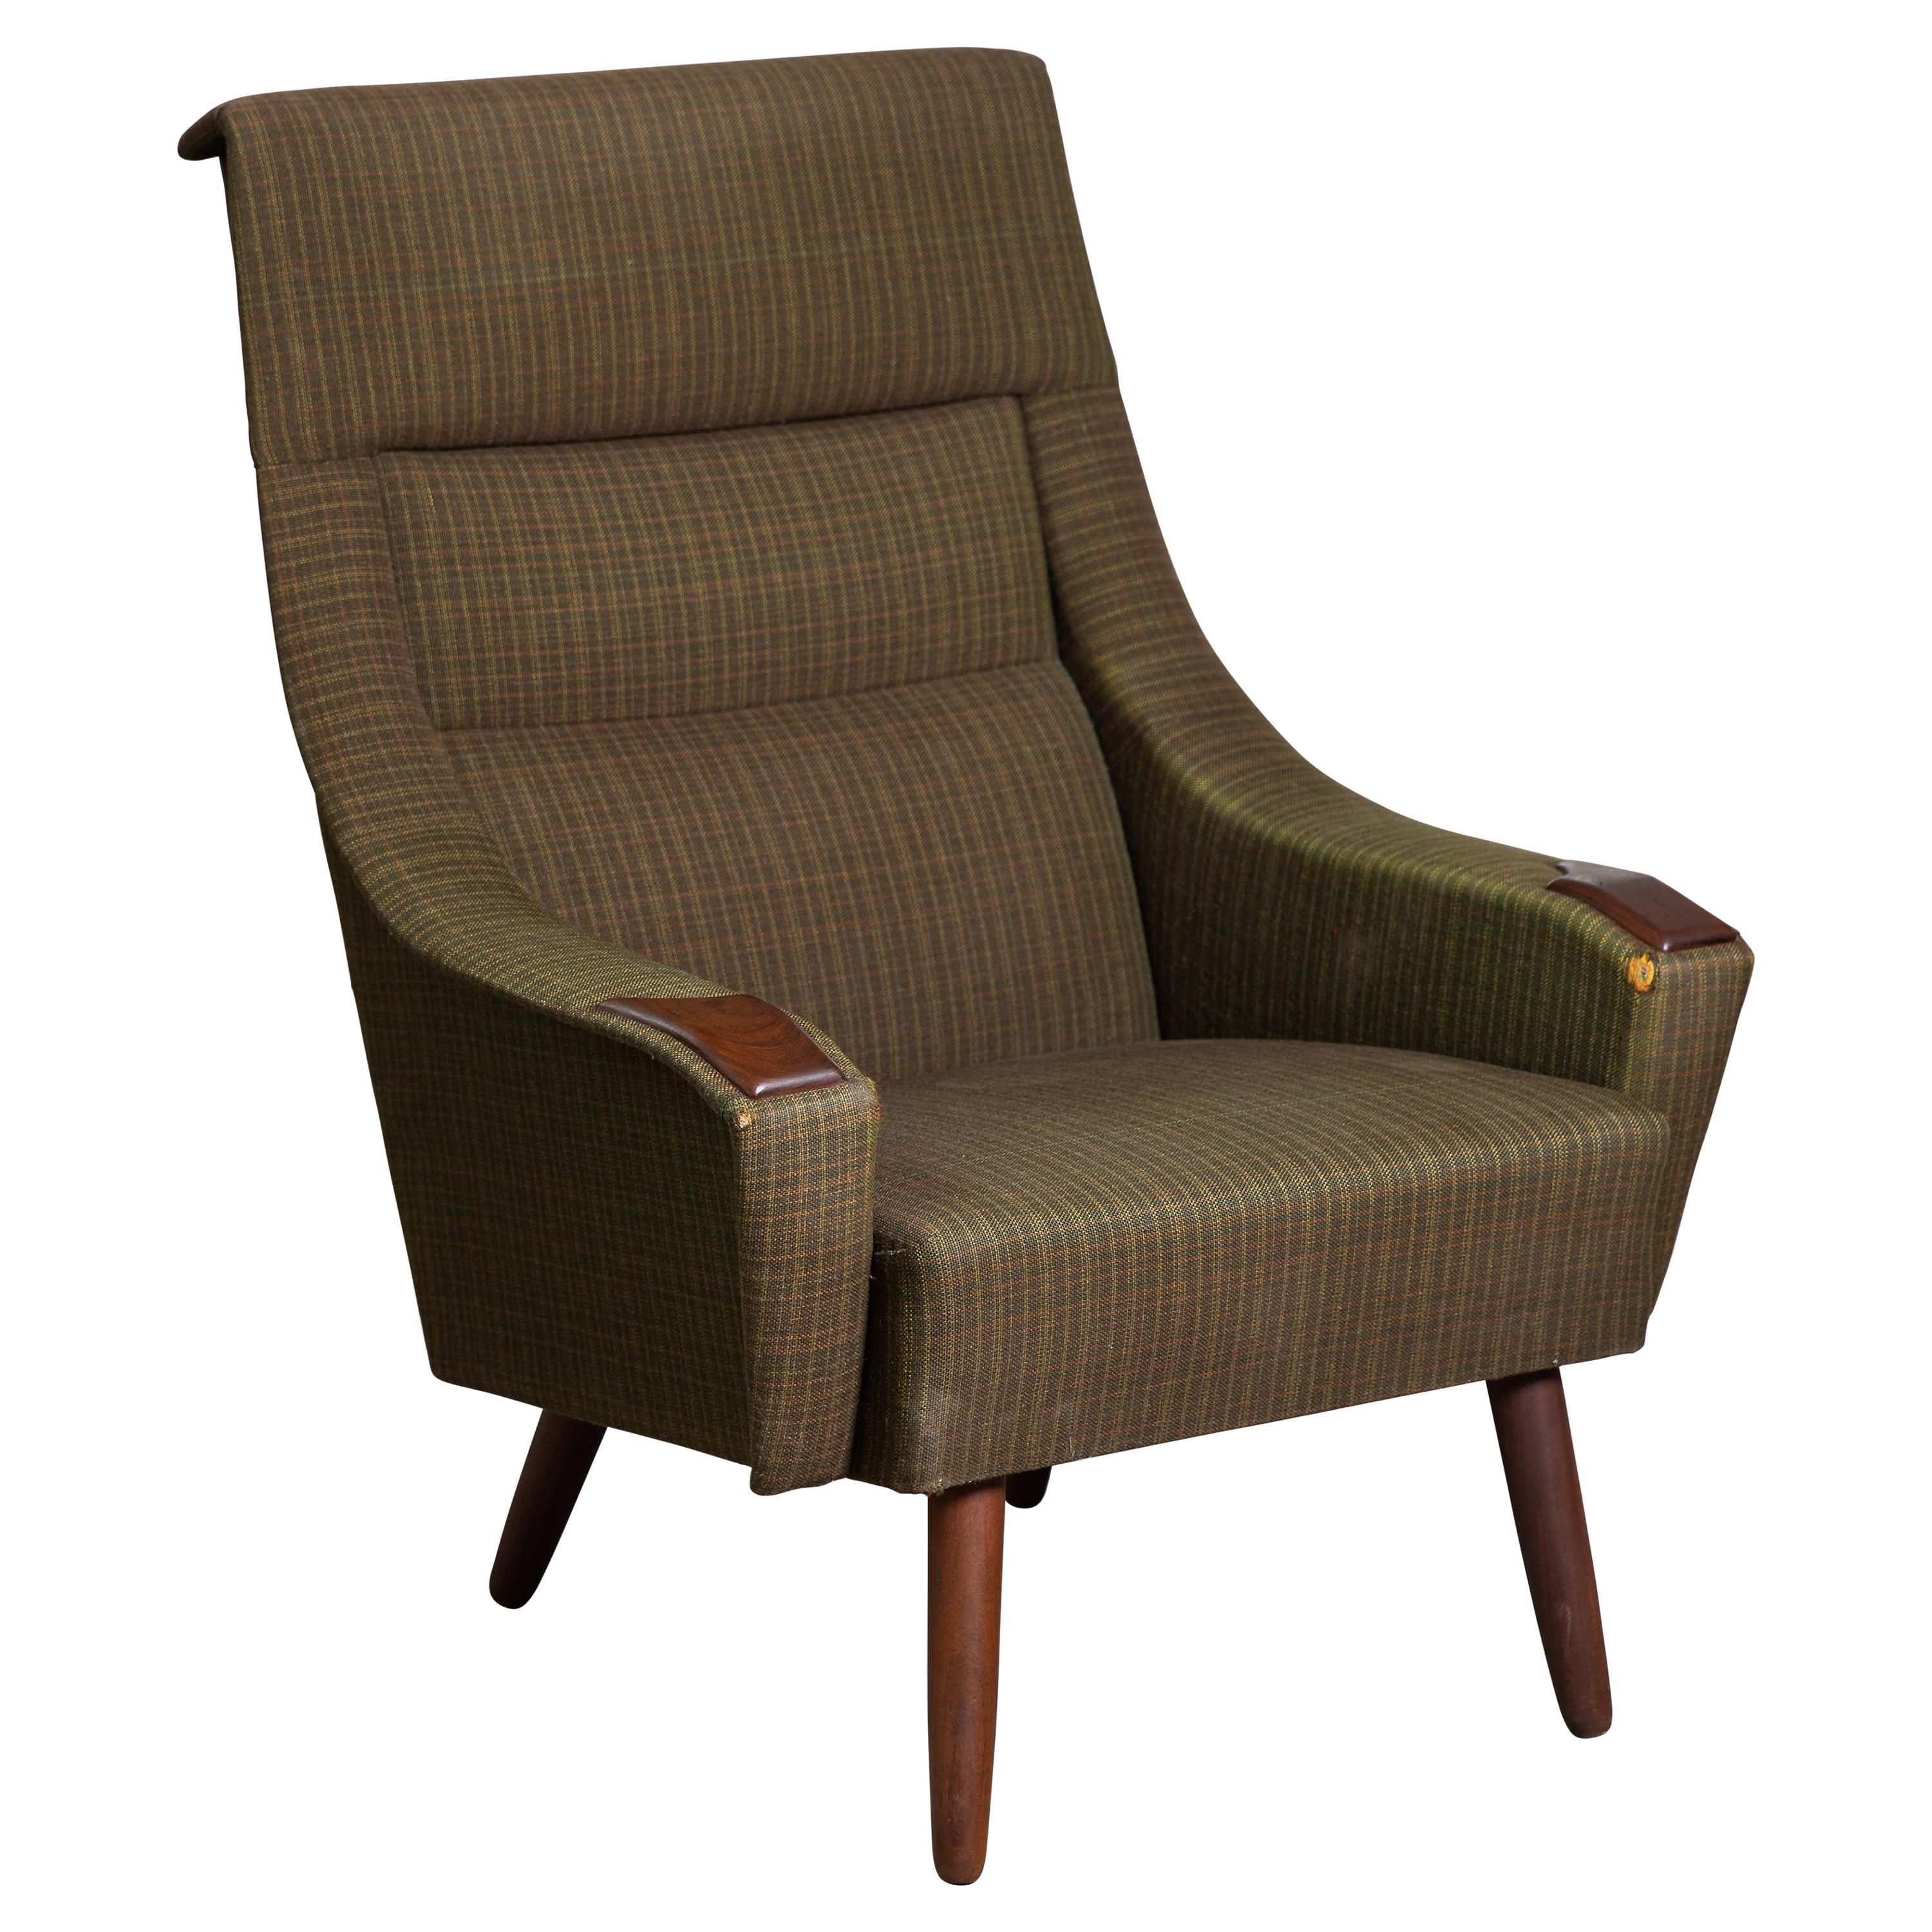 Danish Modern Late 1950's Lounge Chair with Teak Accent on Armrests